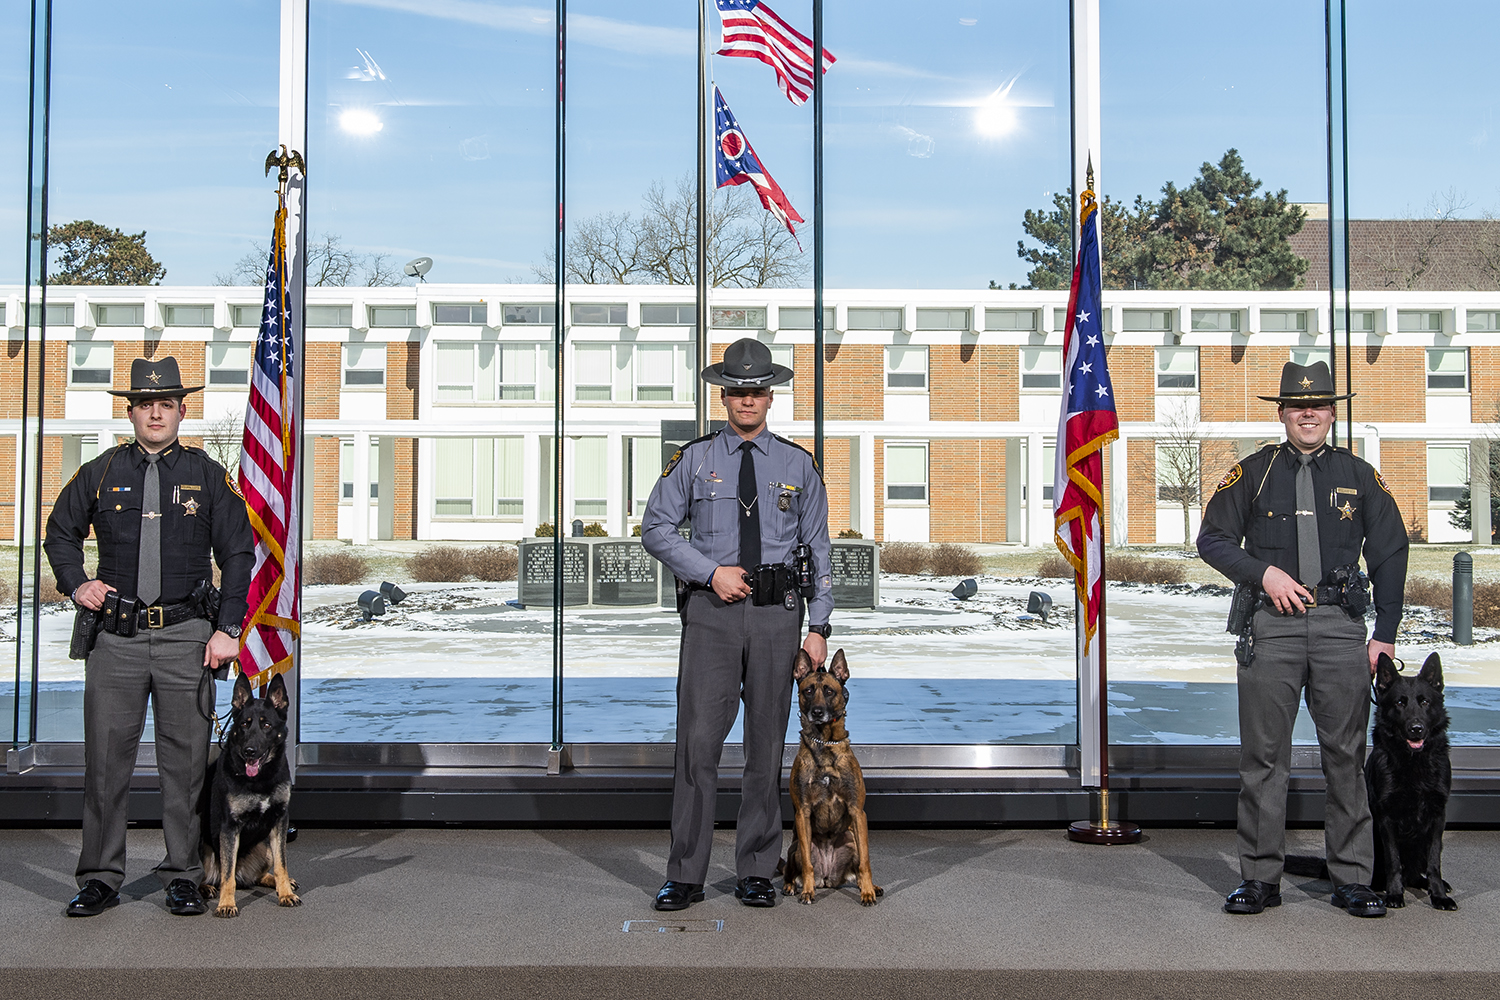 K9 officers graduate